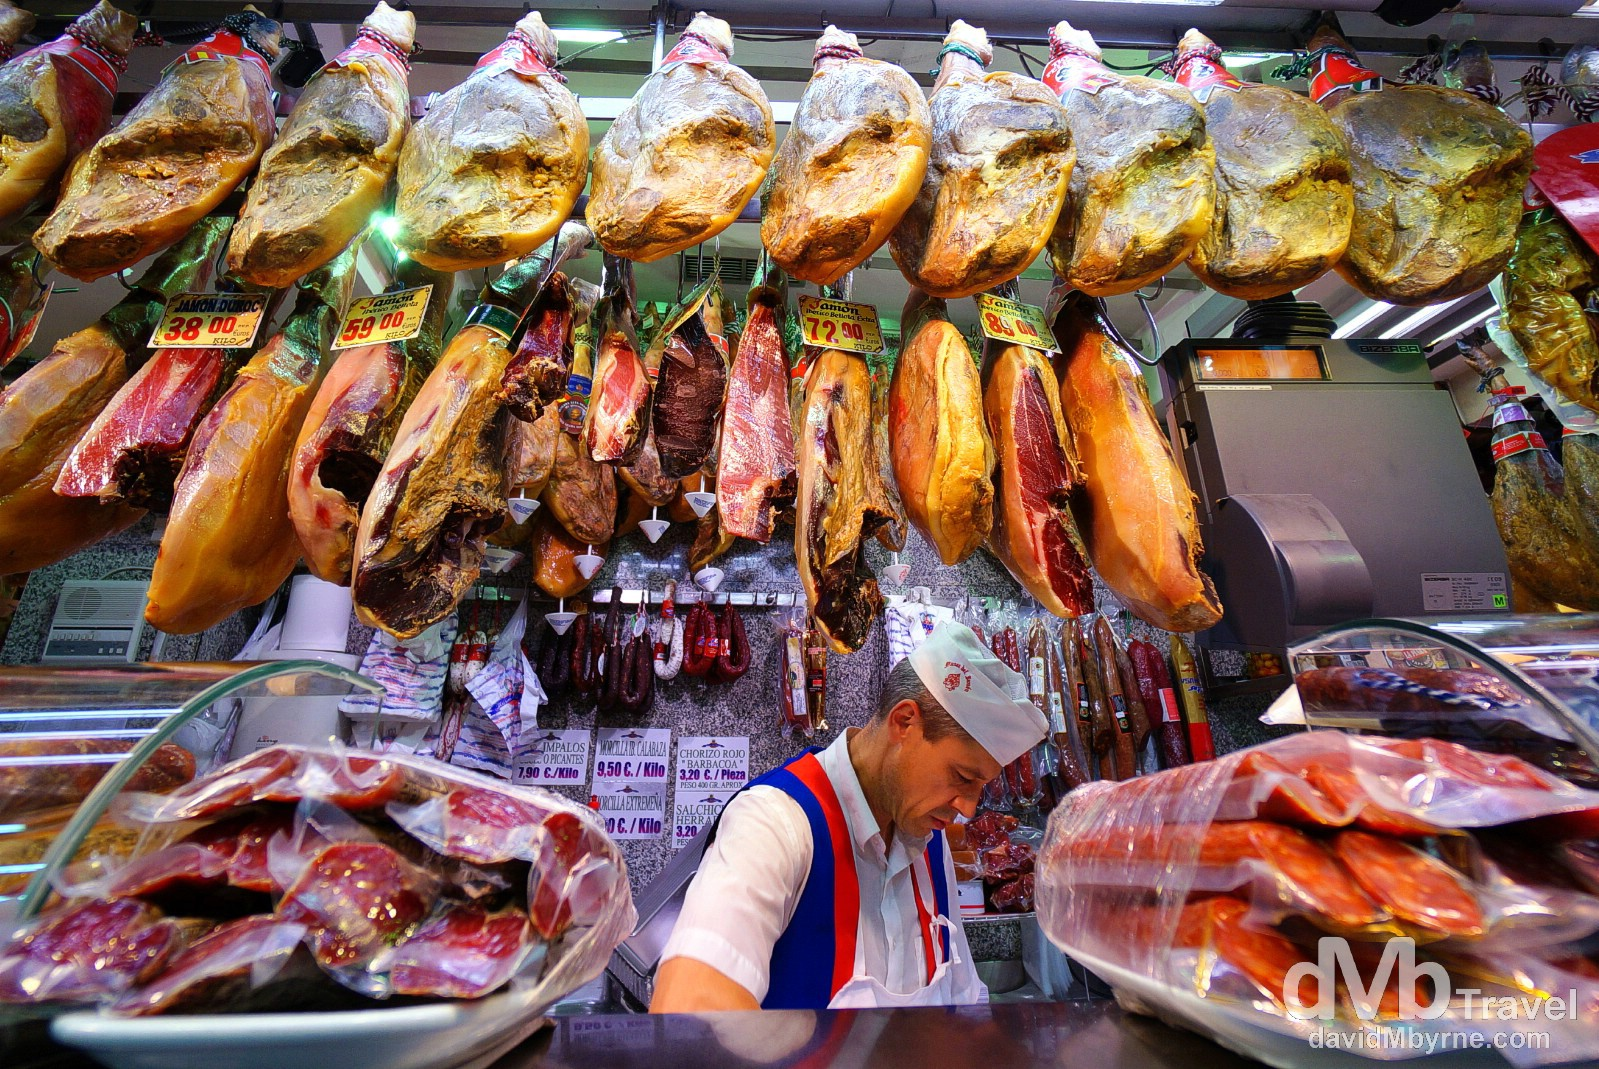 One of the many jamon (ham) shops in Madrid, Spain. June 14th, 2014.